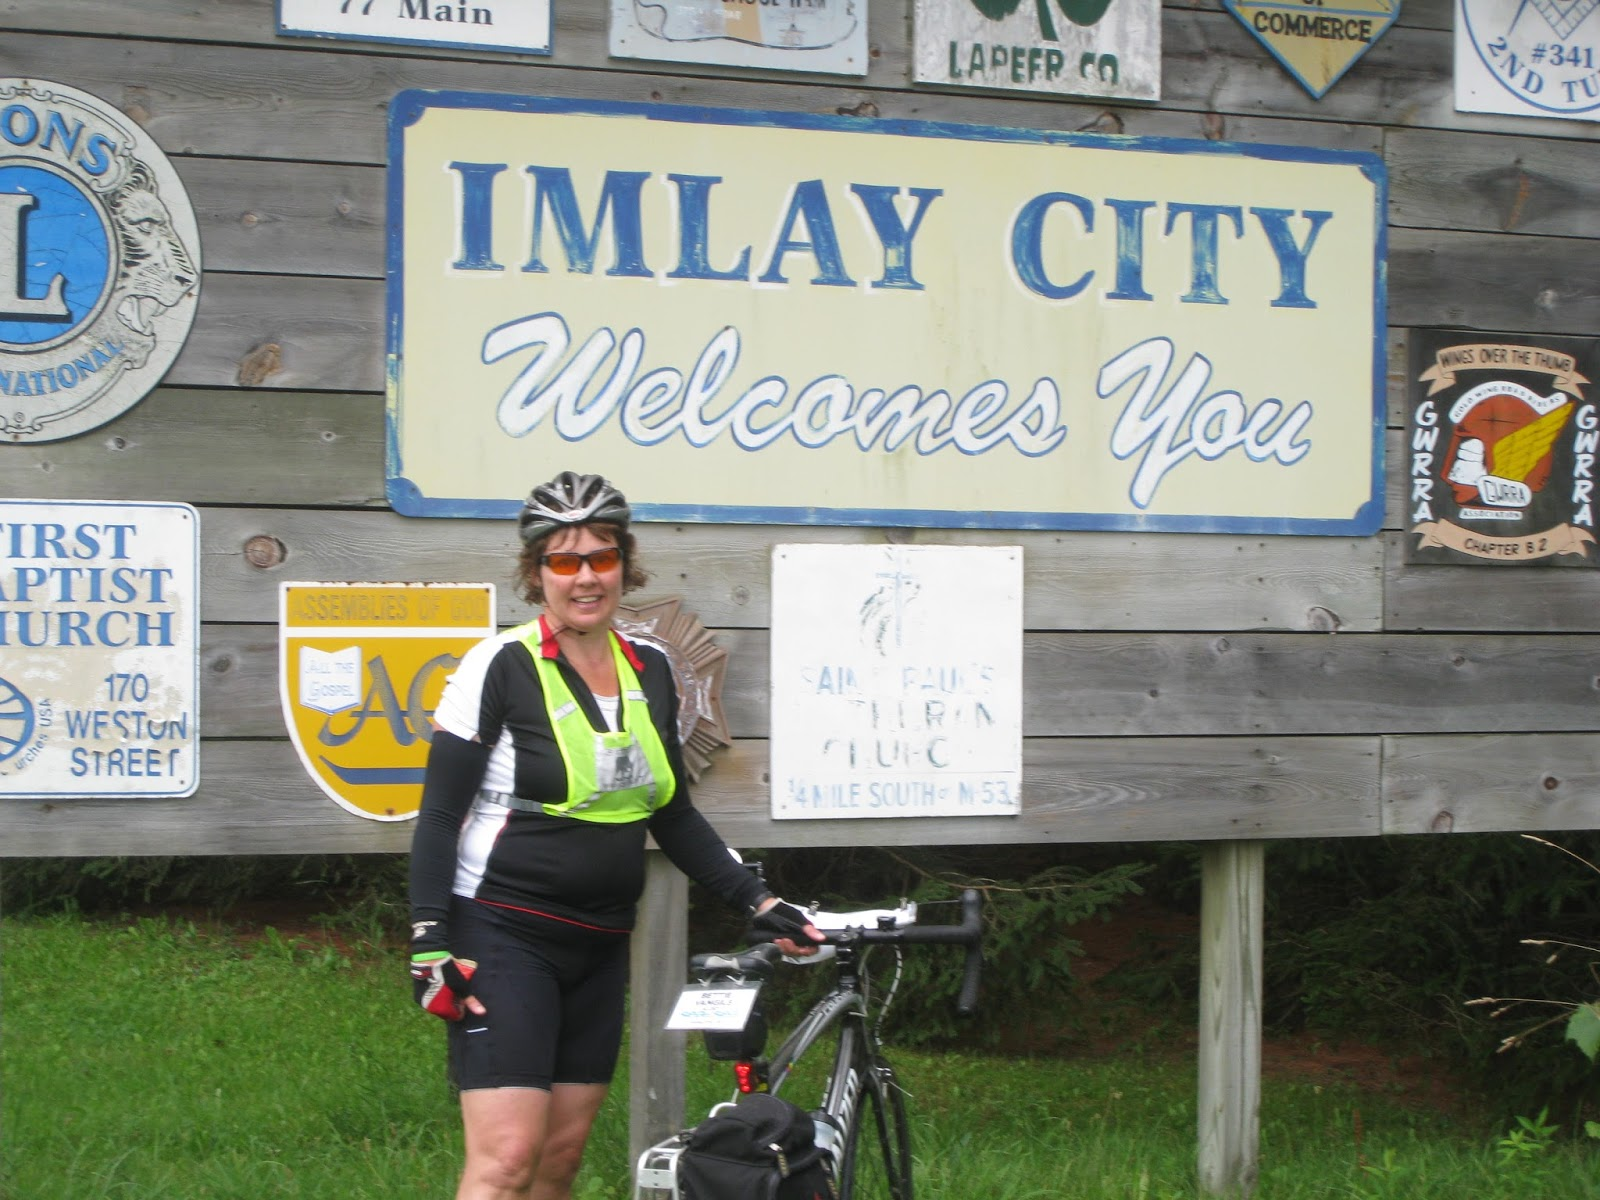 imlay city women A woman was stabbed on monday and another woman is in custody, wdiv reports  imlay city hit and run suspect found dead aug 4, 2018, 8:57 am.